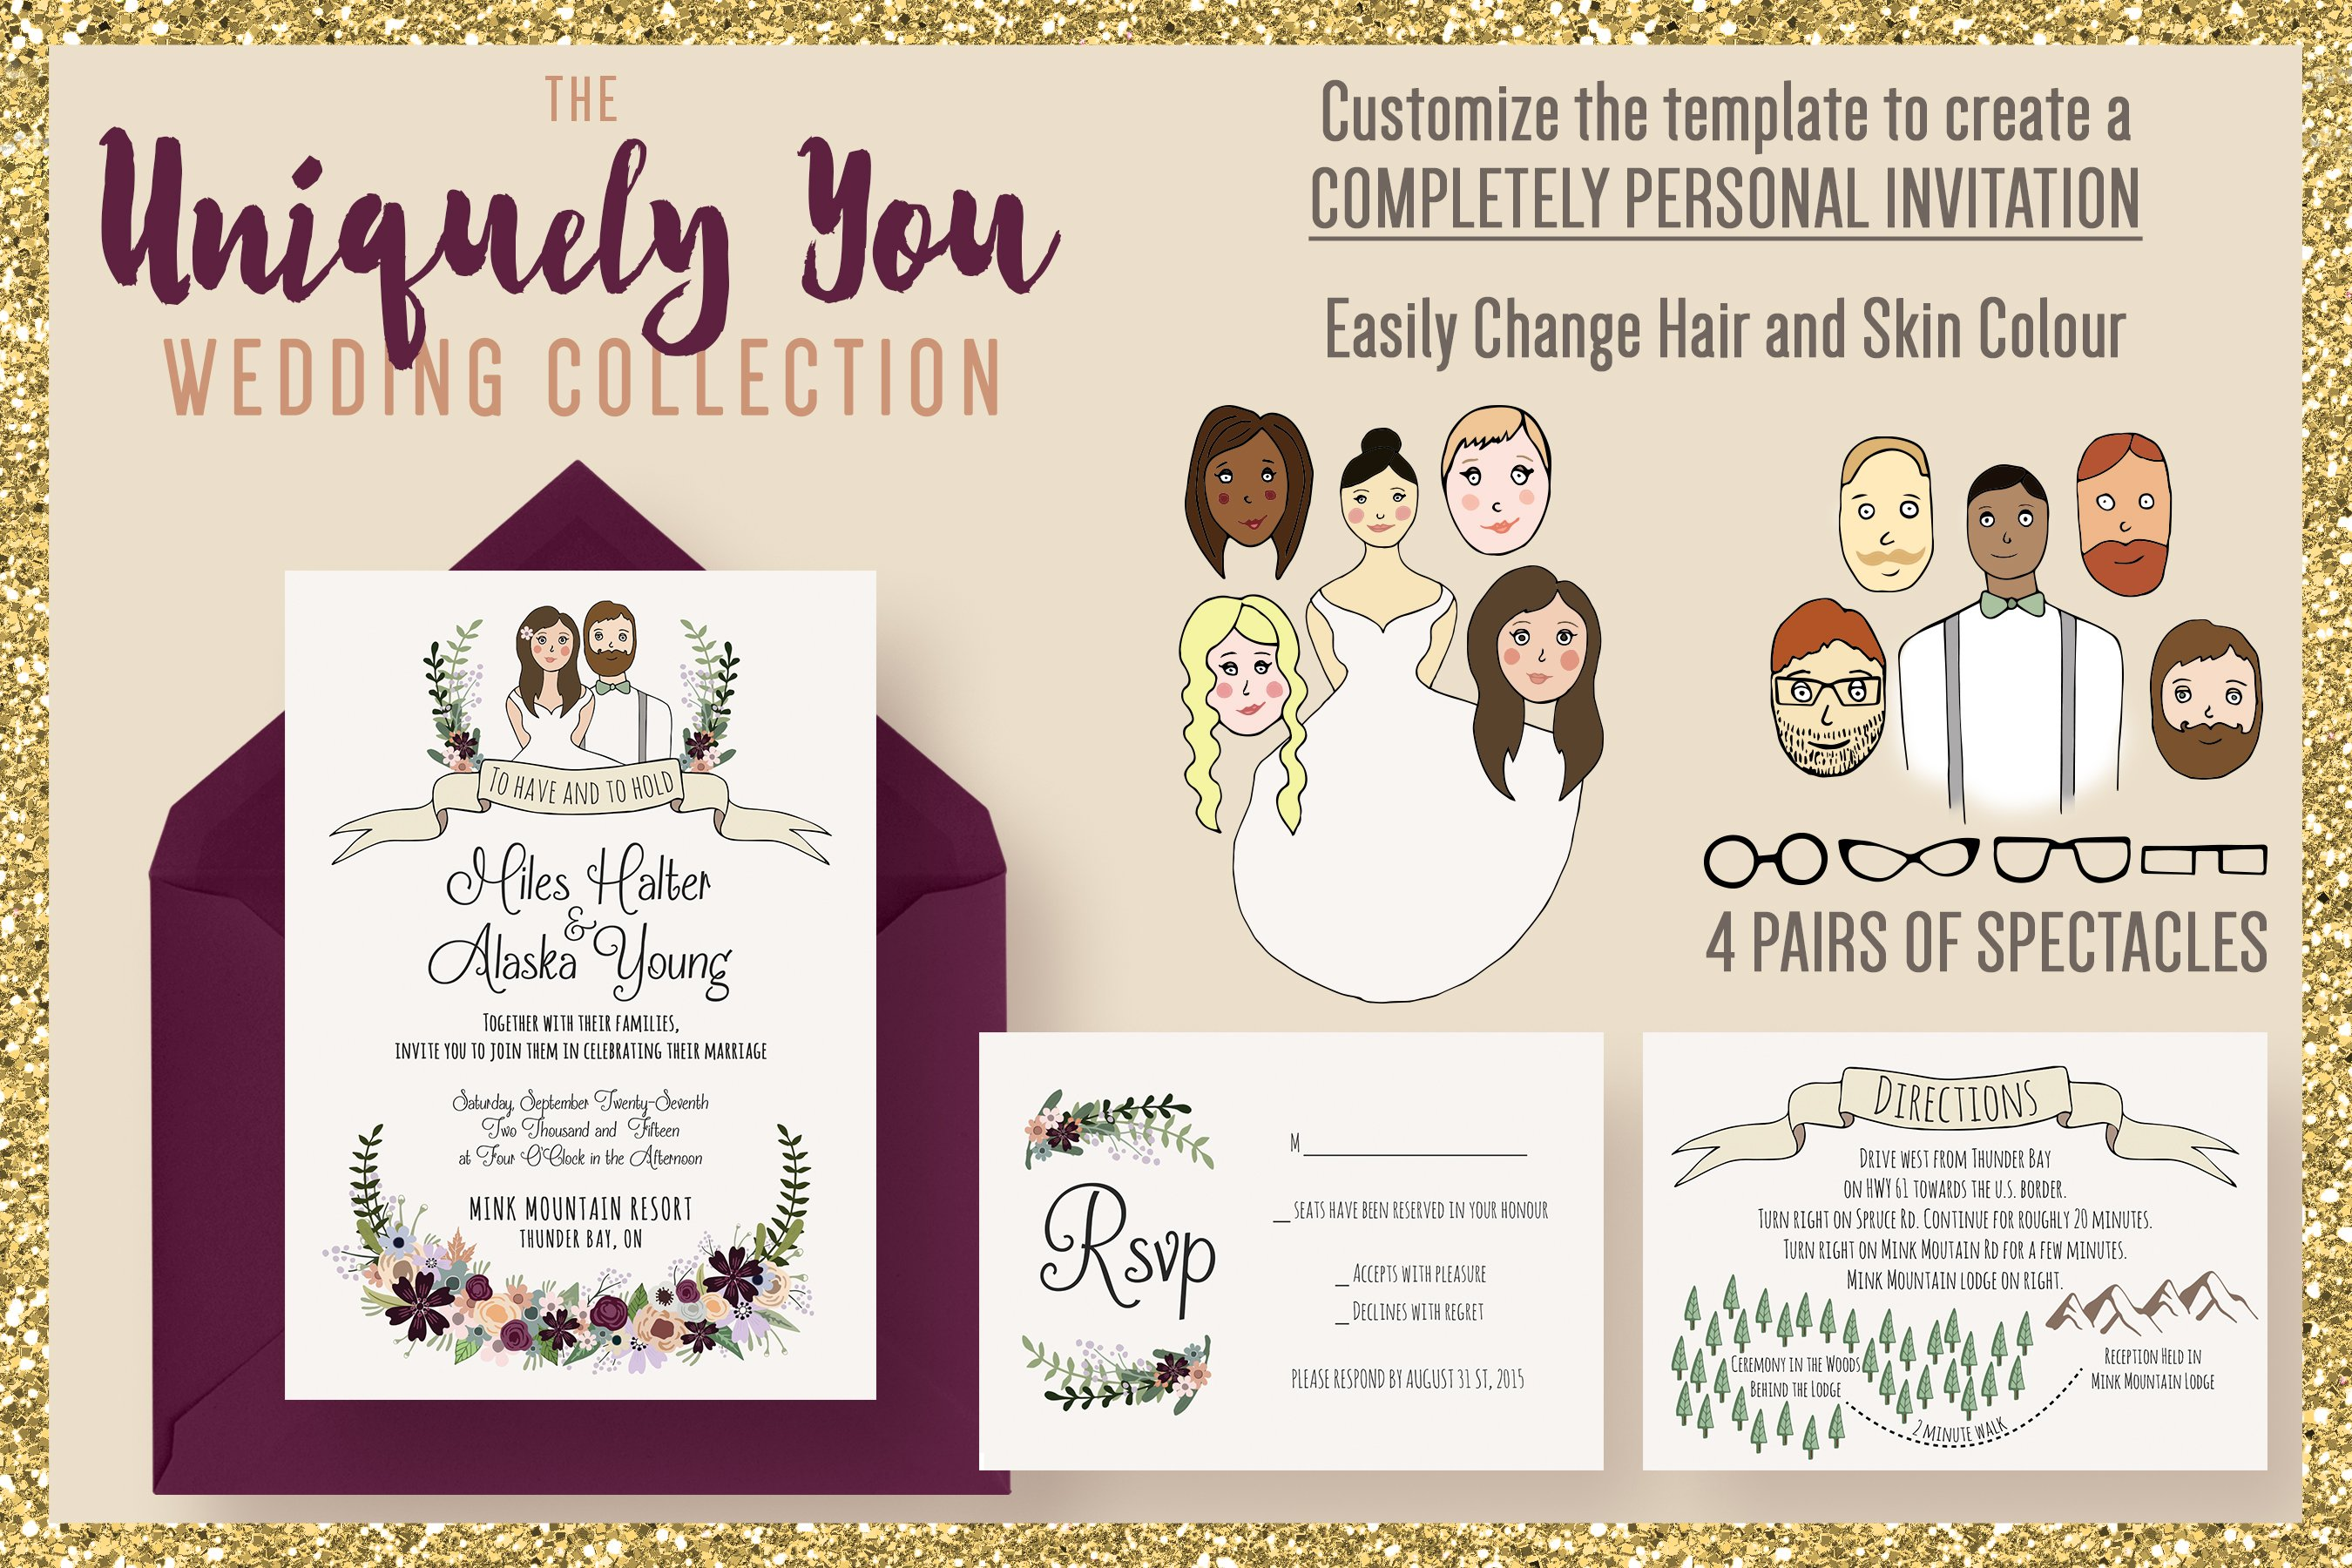 The Uniquely You Wedding Collection Wedding Templates